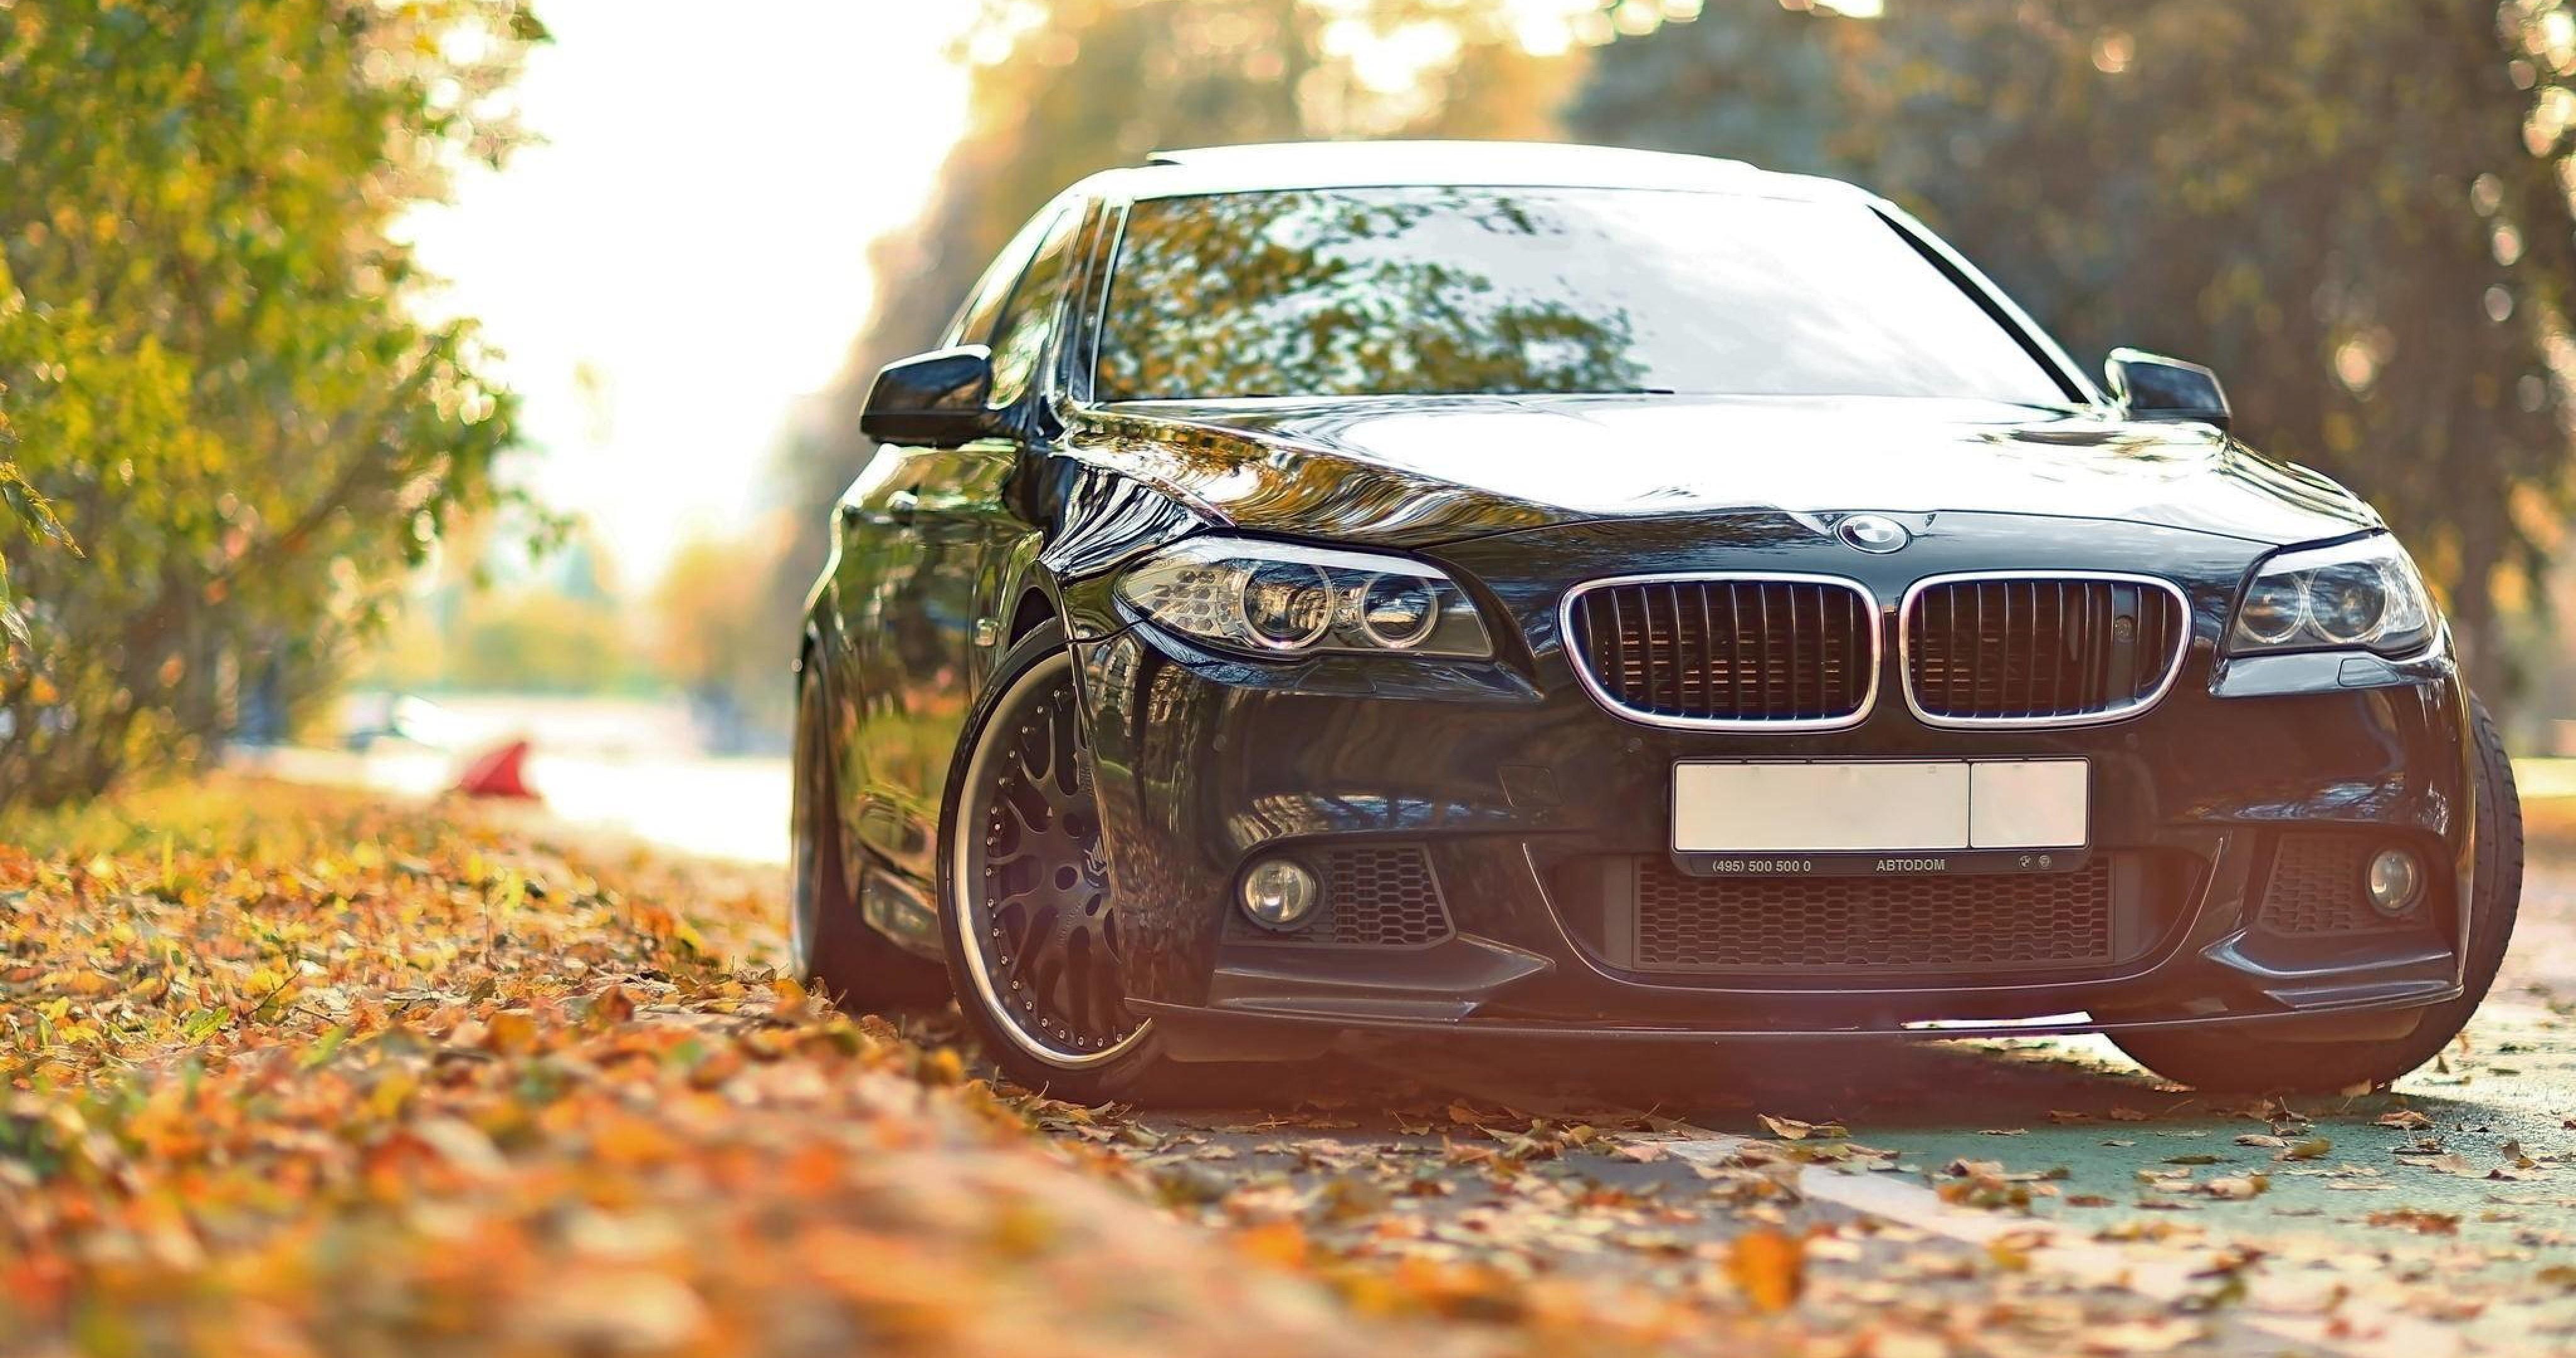 Bmw Car Wallpaper 4k 4096x2160 Download Hd Wallpaper Wallpapertip